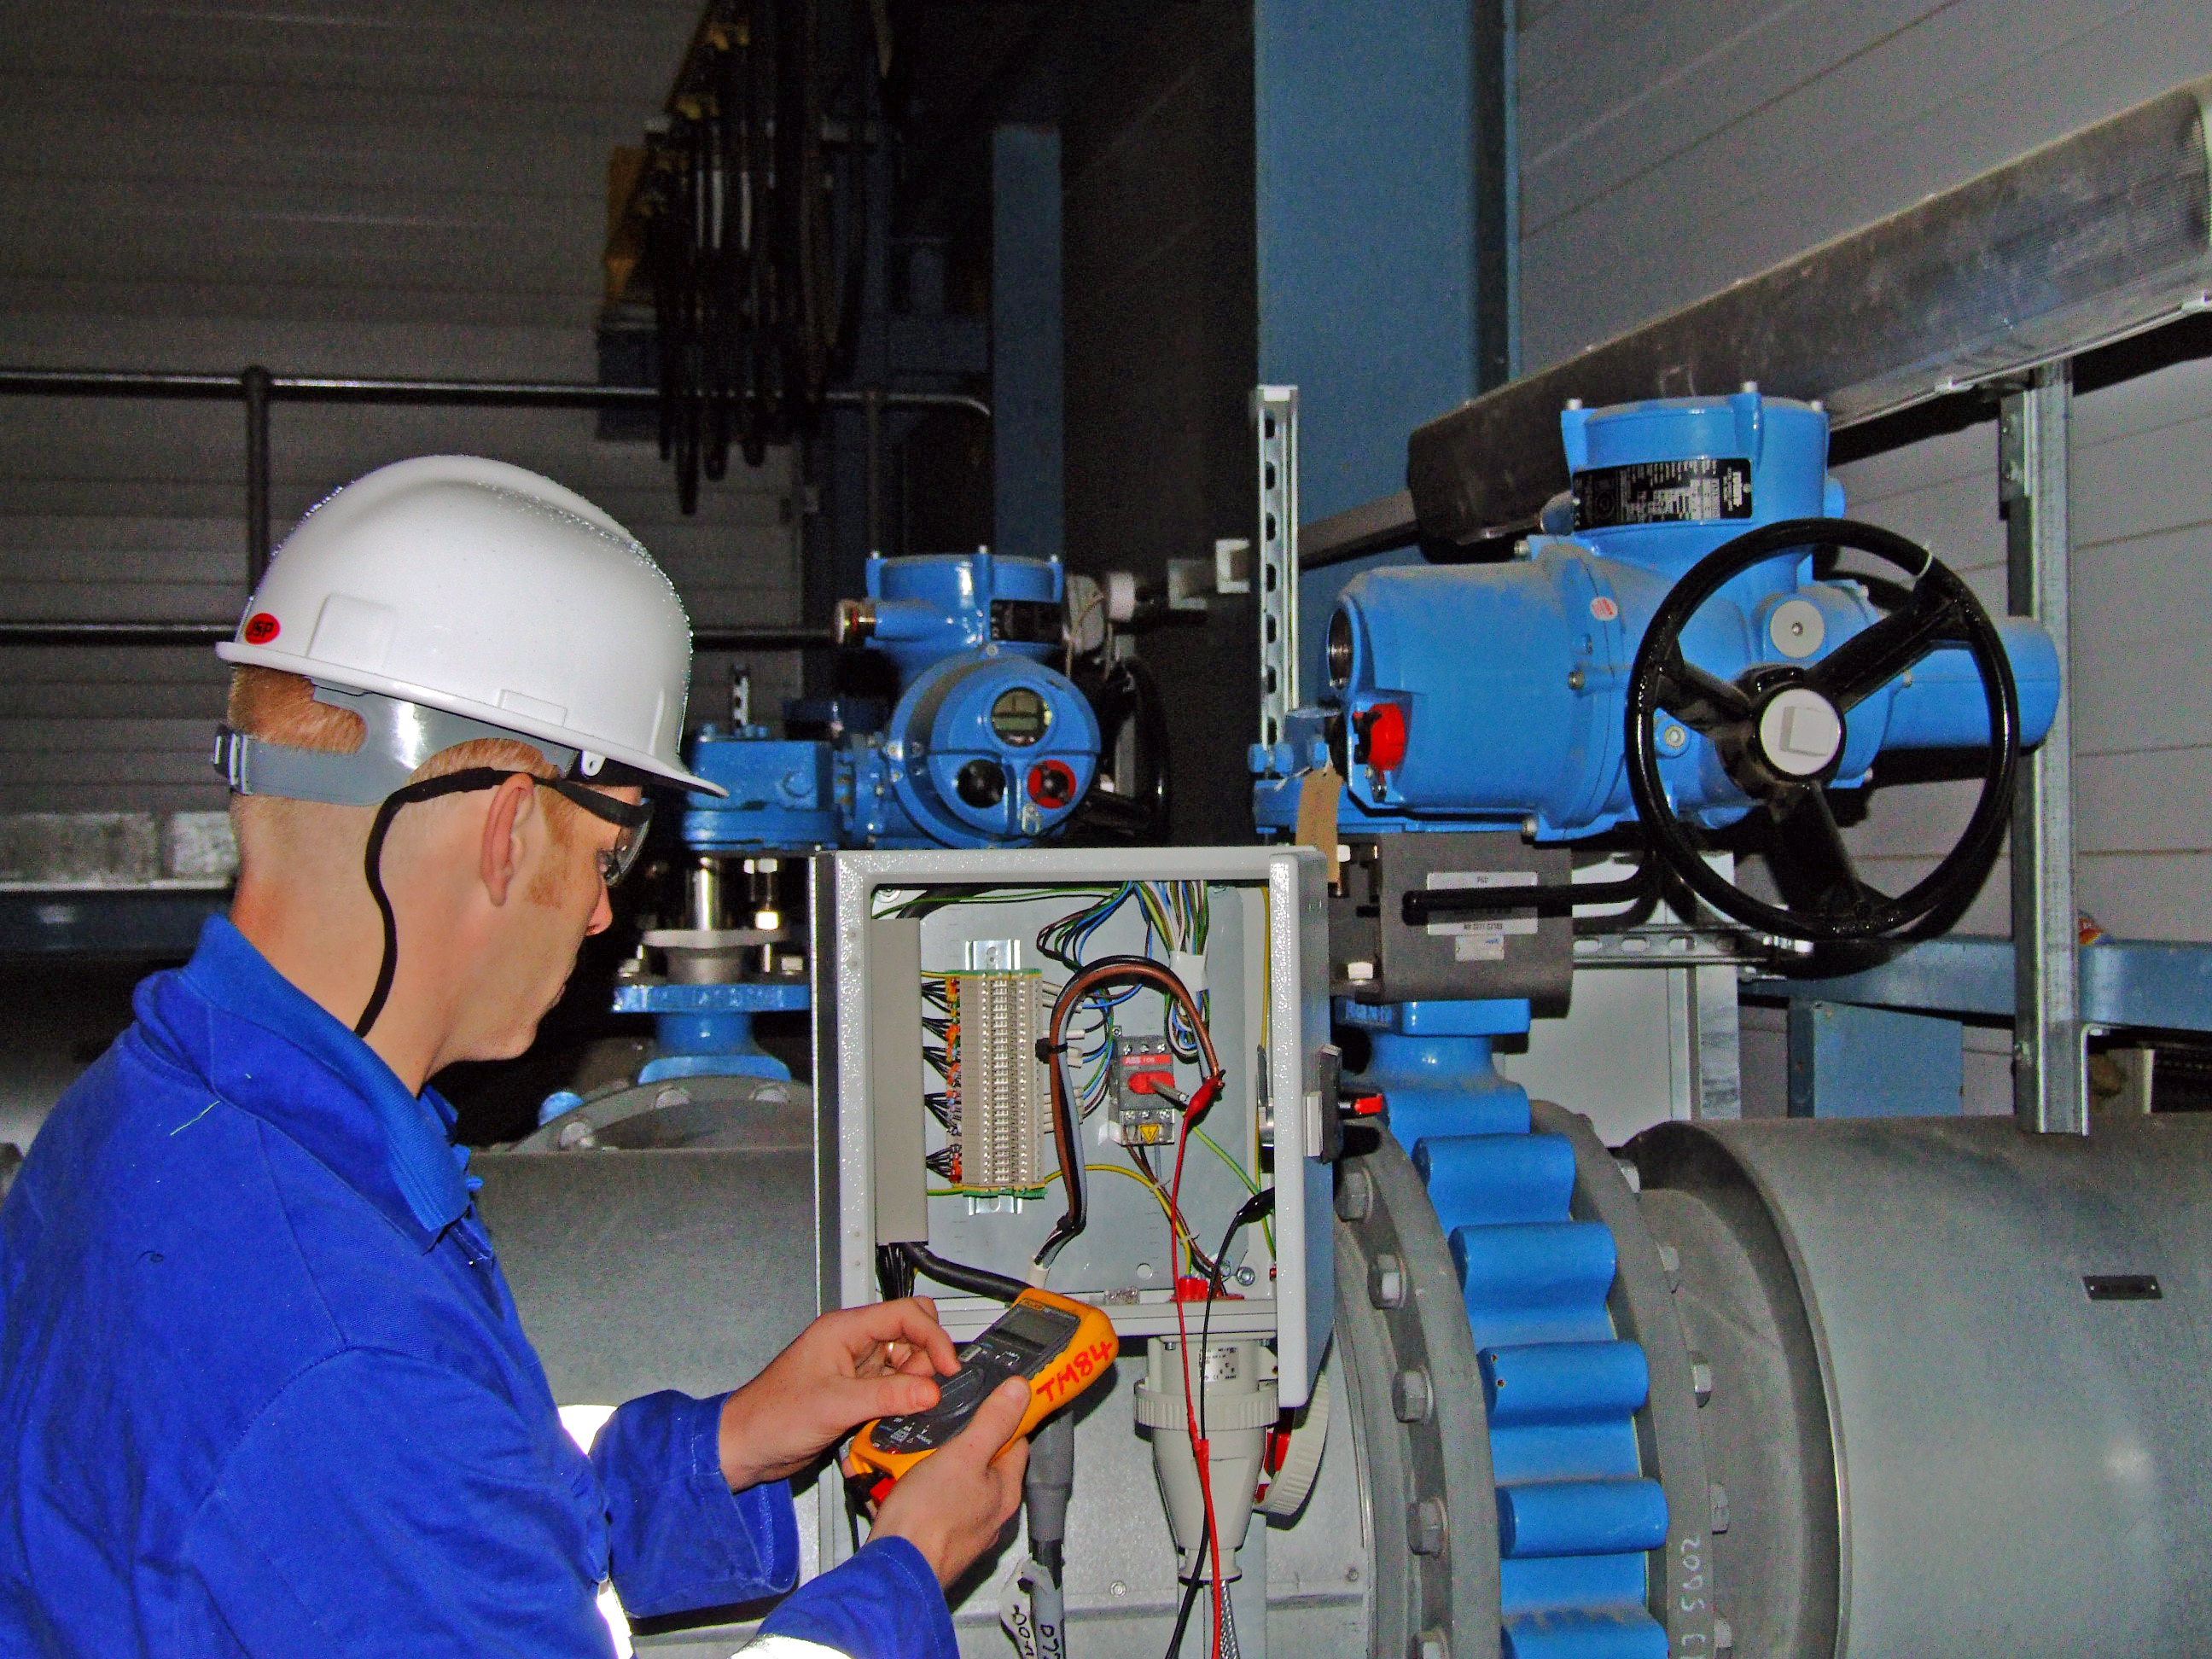 Electric actuator (blue cylinder) on a valve in a power plant. A black  handwheel is visible on the actuator, which allows manual positioning of  the valve.